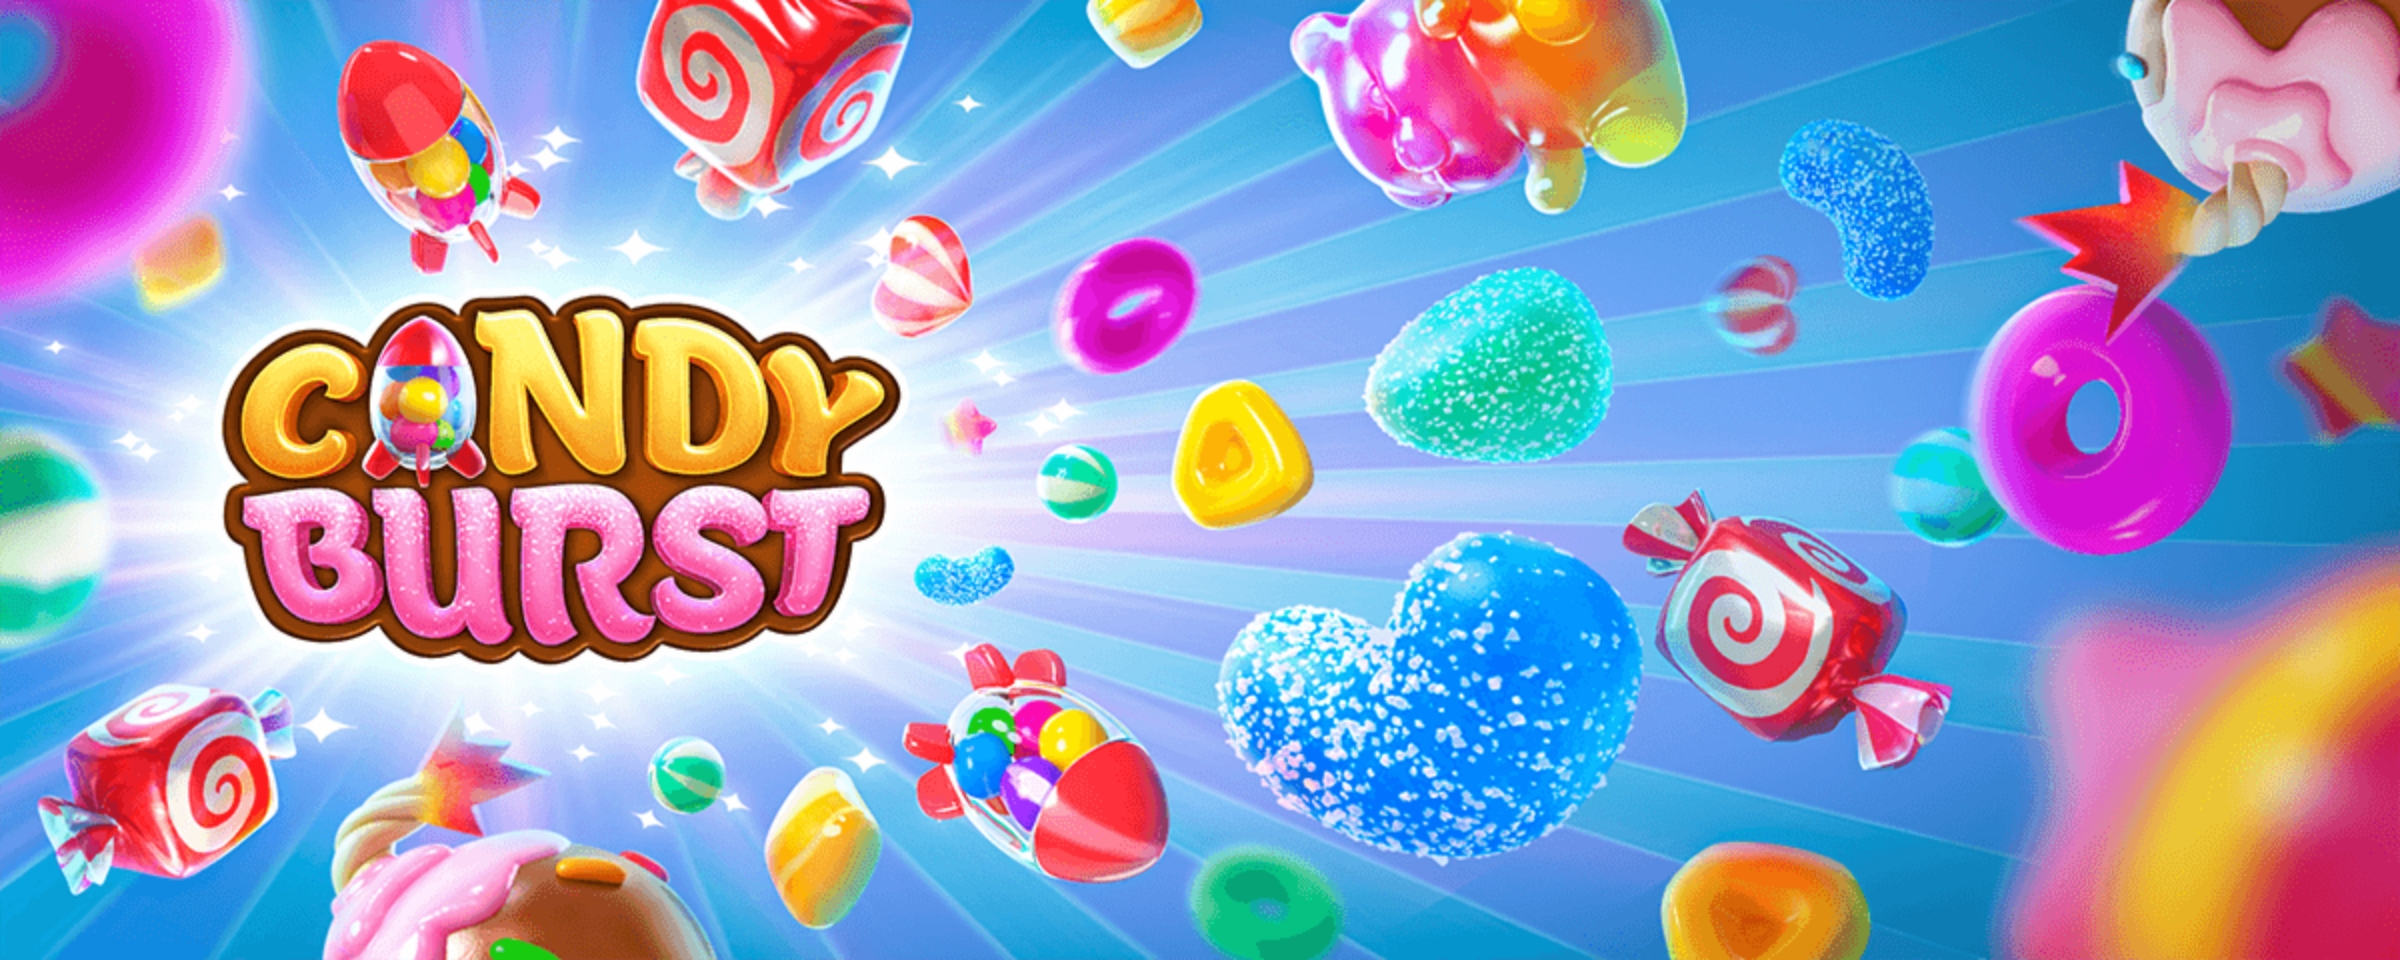 The Candy Burst (PG Soft) Online Slot Demo Game by PG Soft